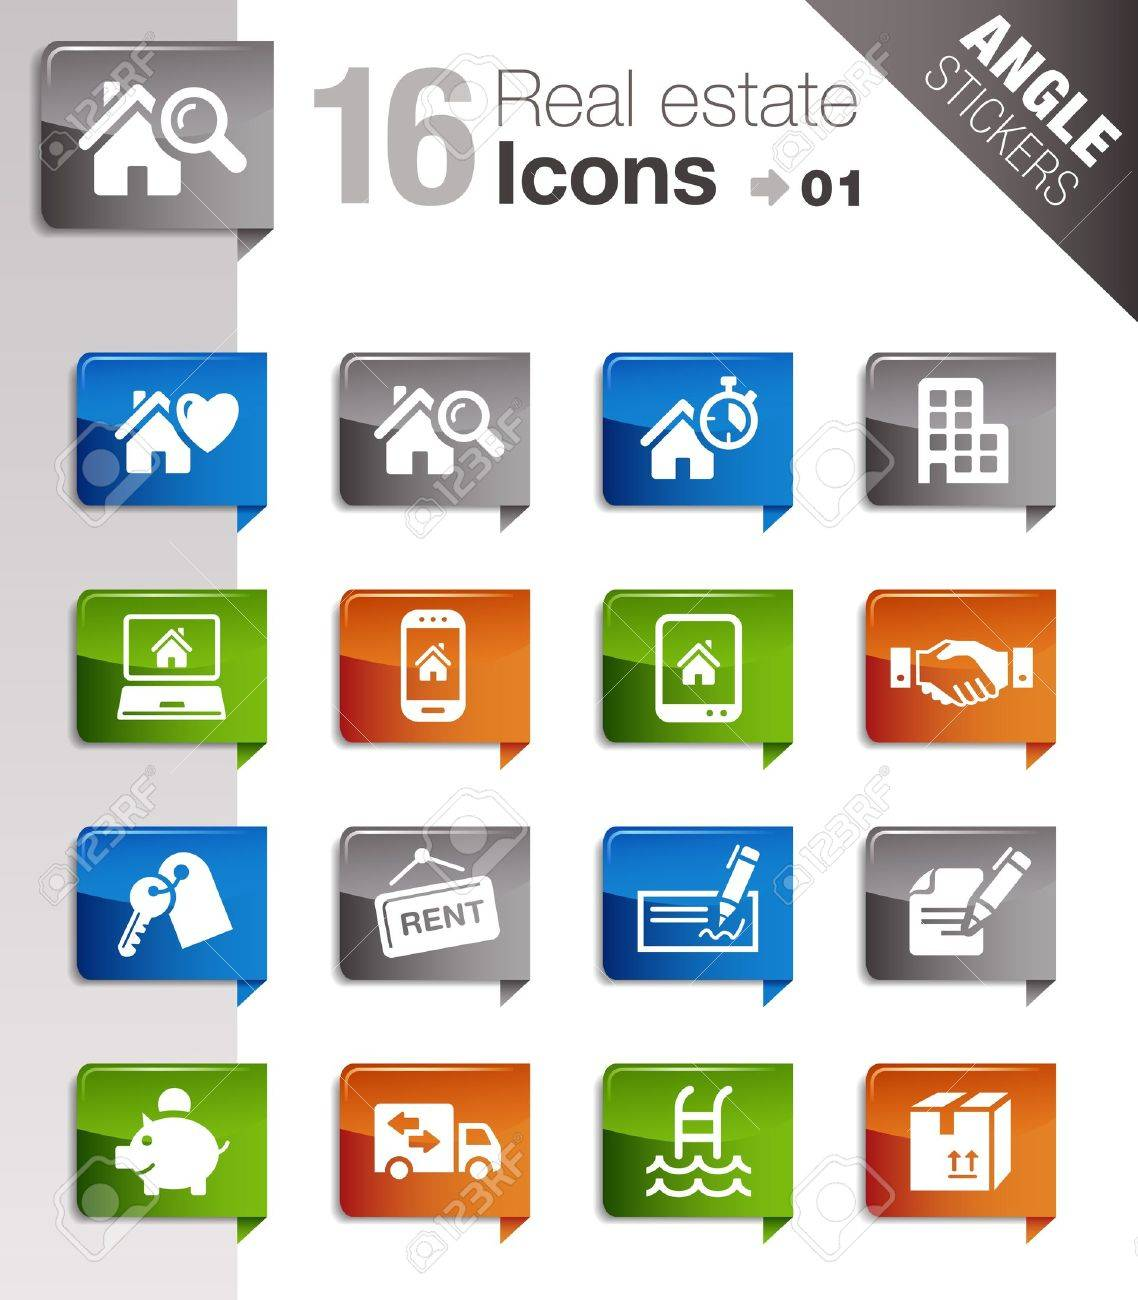 Angle Stickers - Real estate icons Stock Vector - 12488241